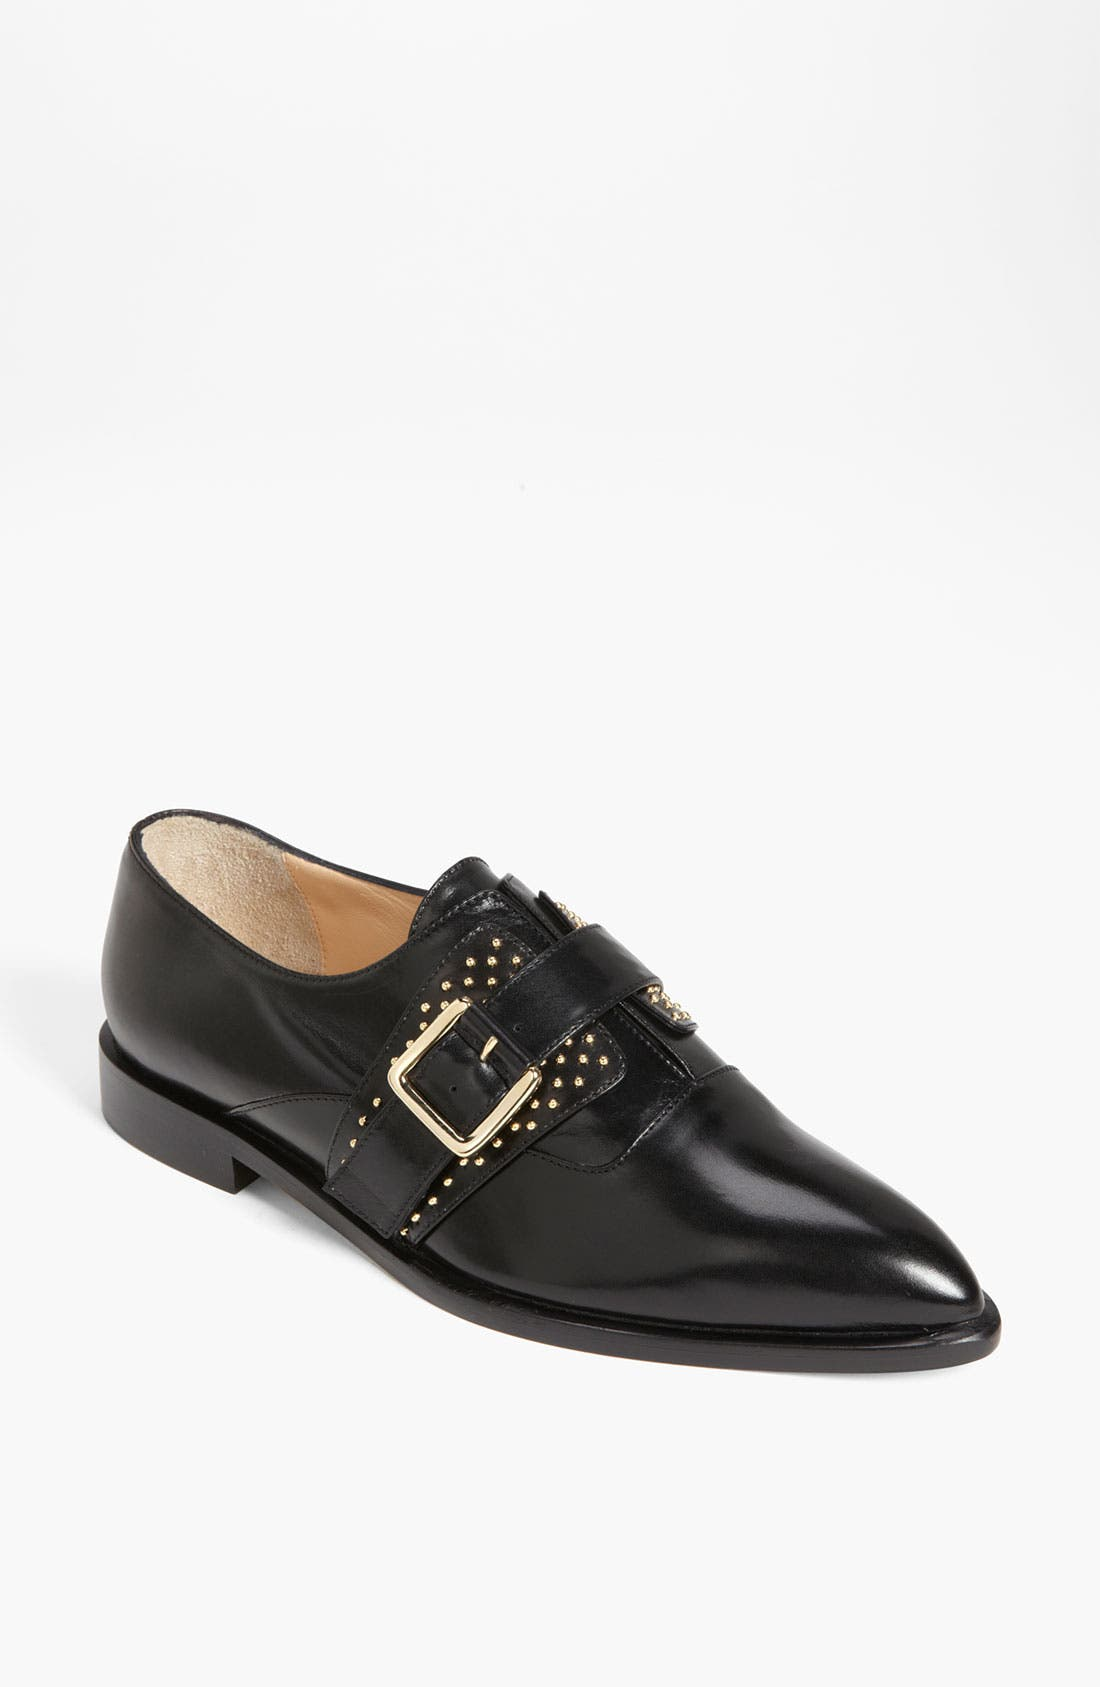 Main Image - Bionda Castana Brogue Shoe